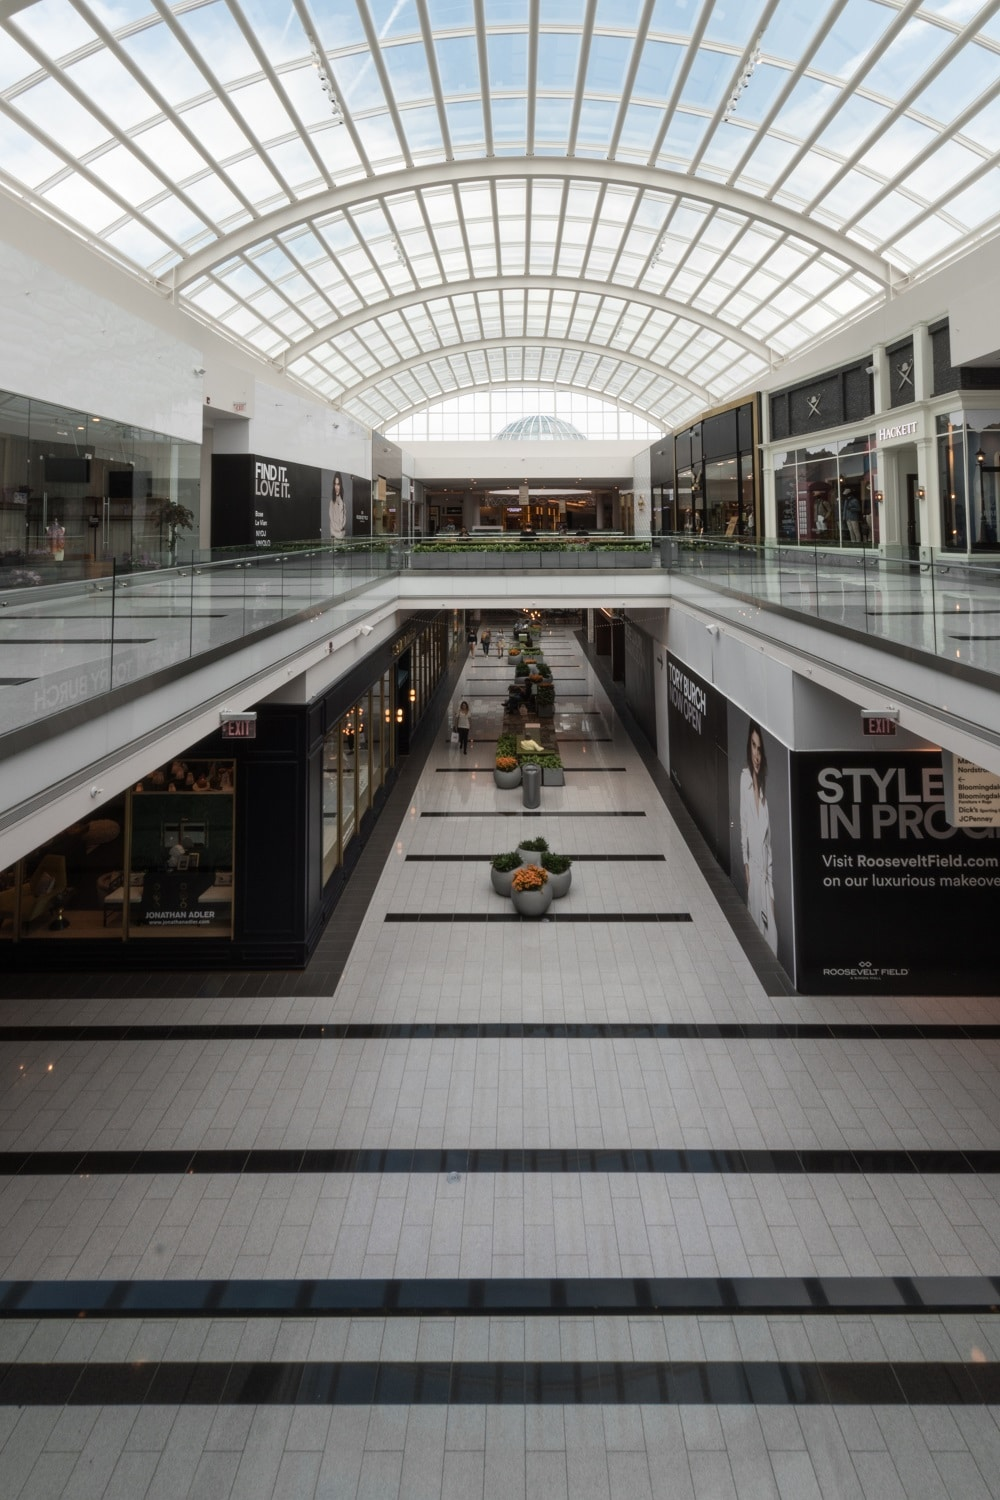 Roosevelt Field is located in Garden City, New York and offers stores - Scroll down for Roosevelt Field shopping information: store list (directory), locations, mall hours, contact and address.2/5(3).